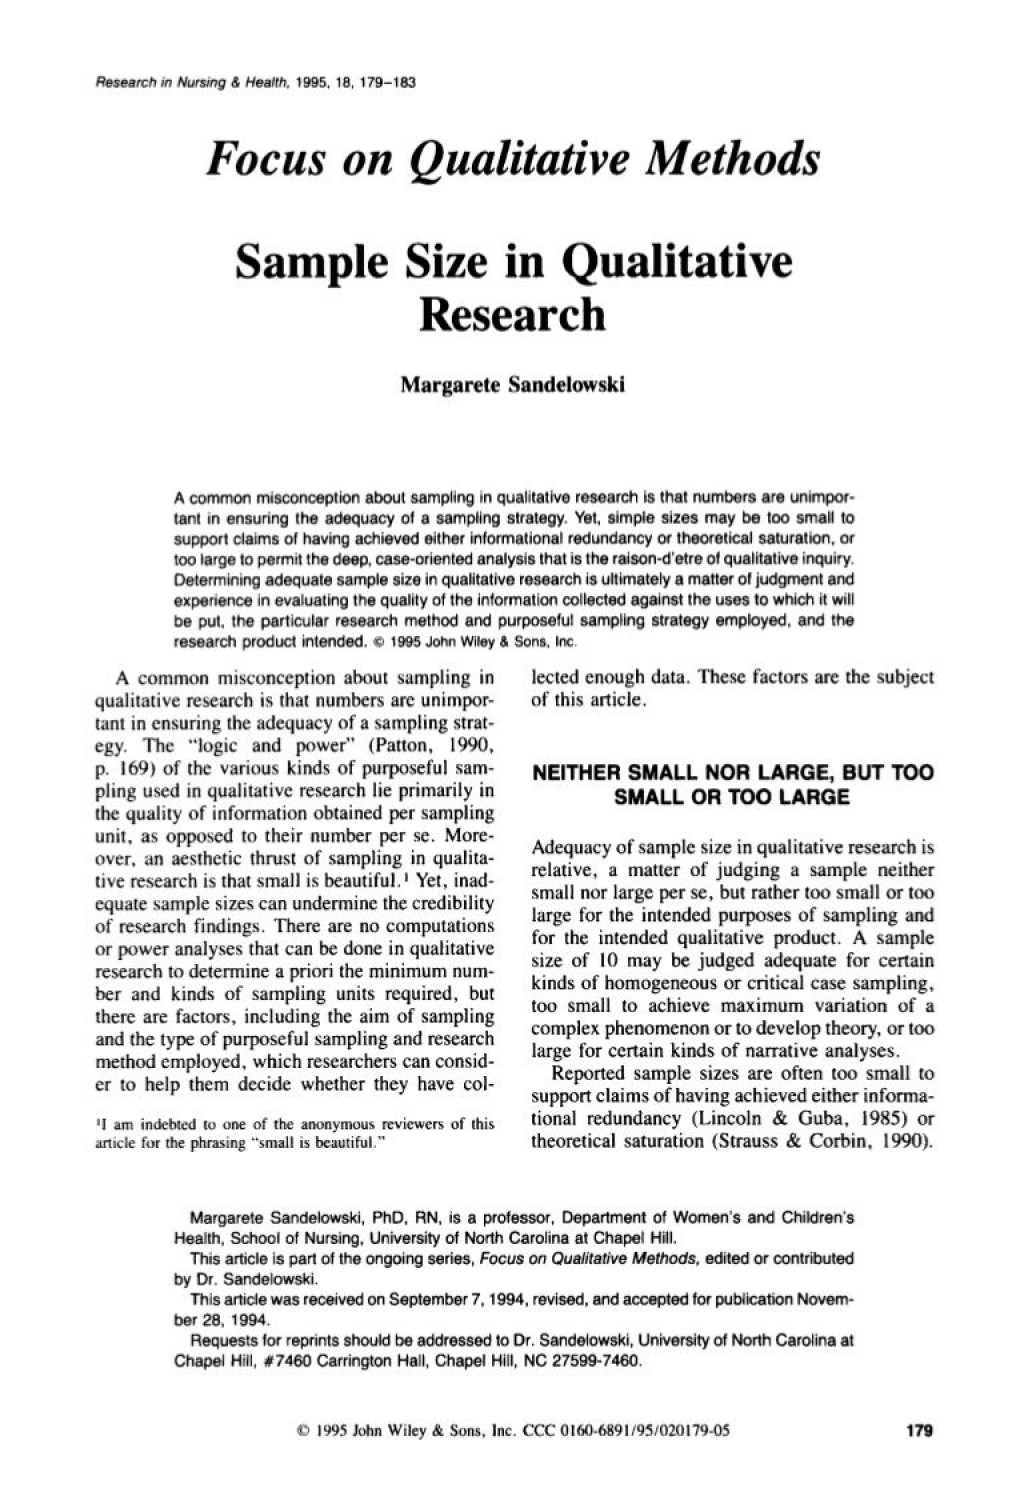 009 Research Paper Format Writing Amazing Qualitative Large